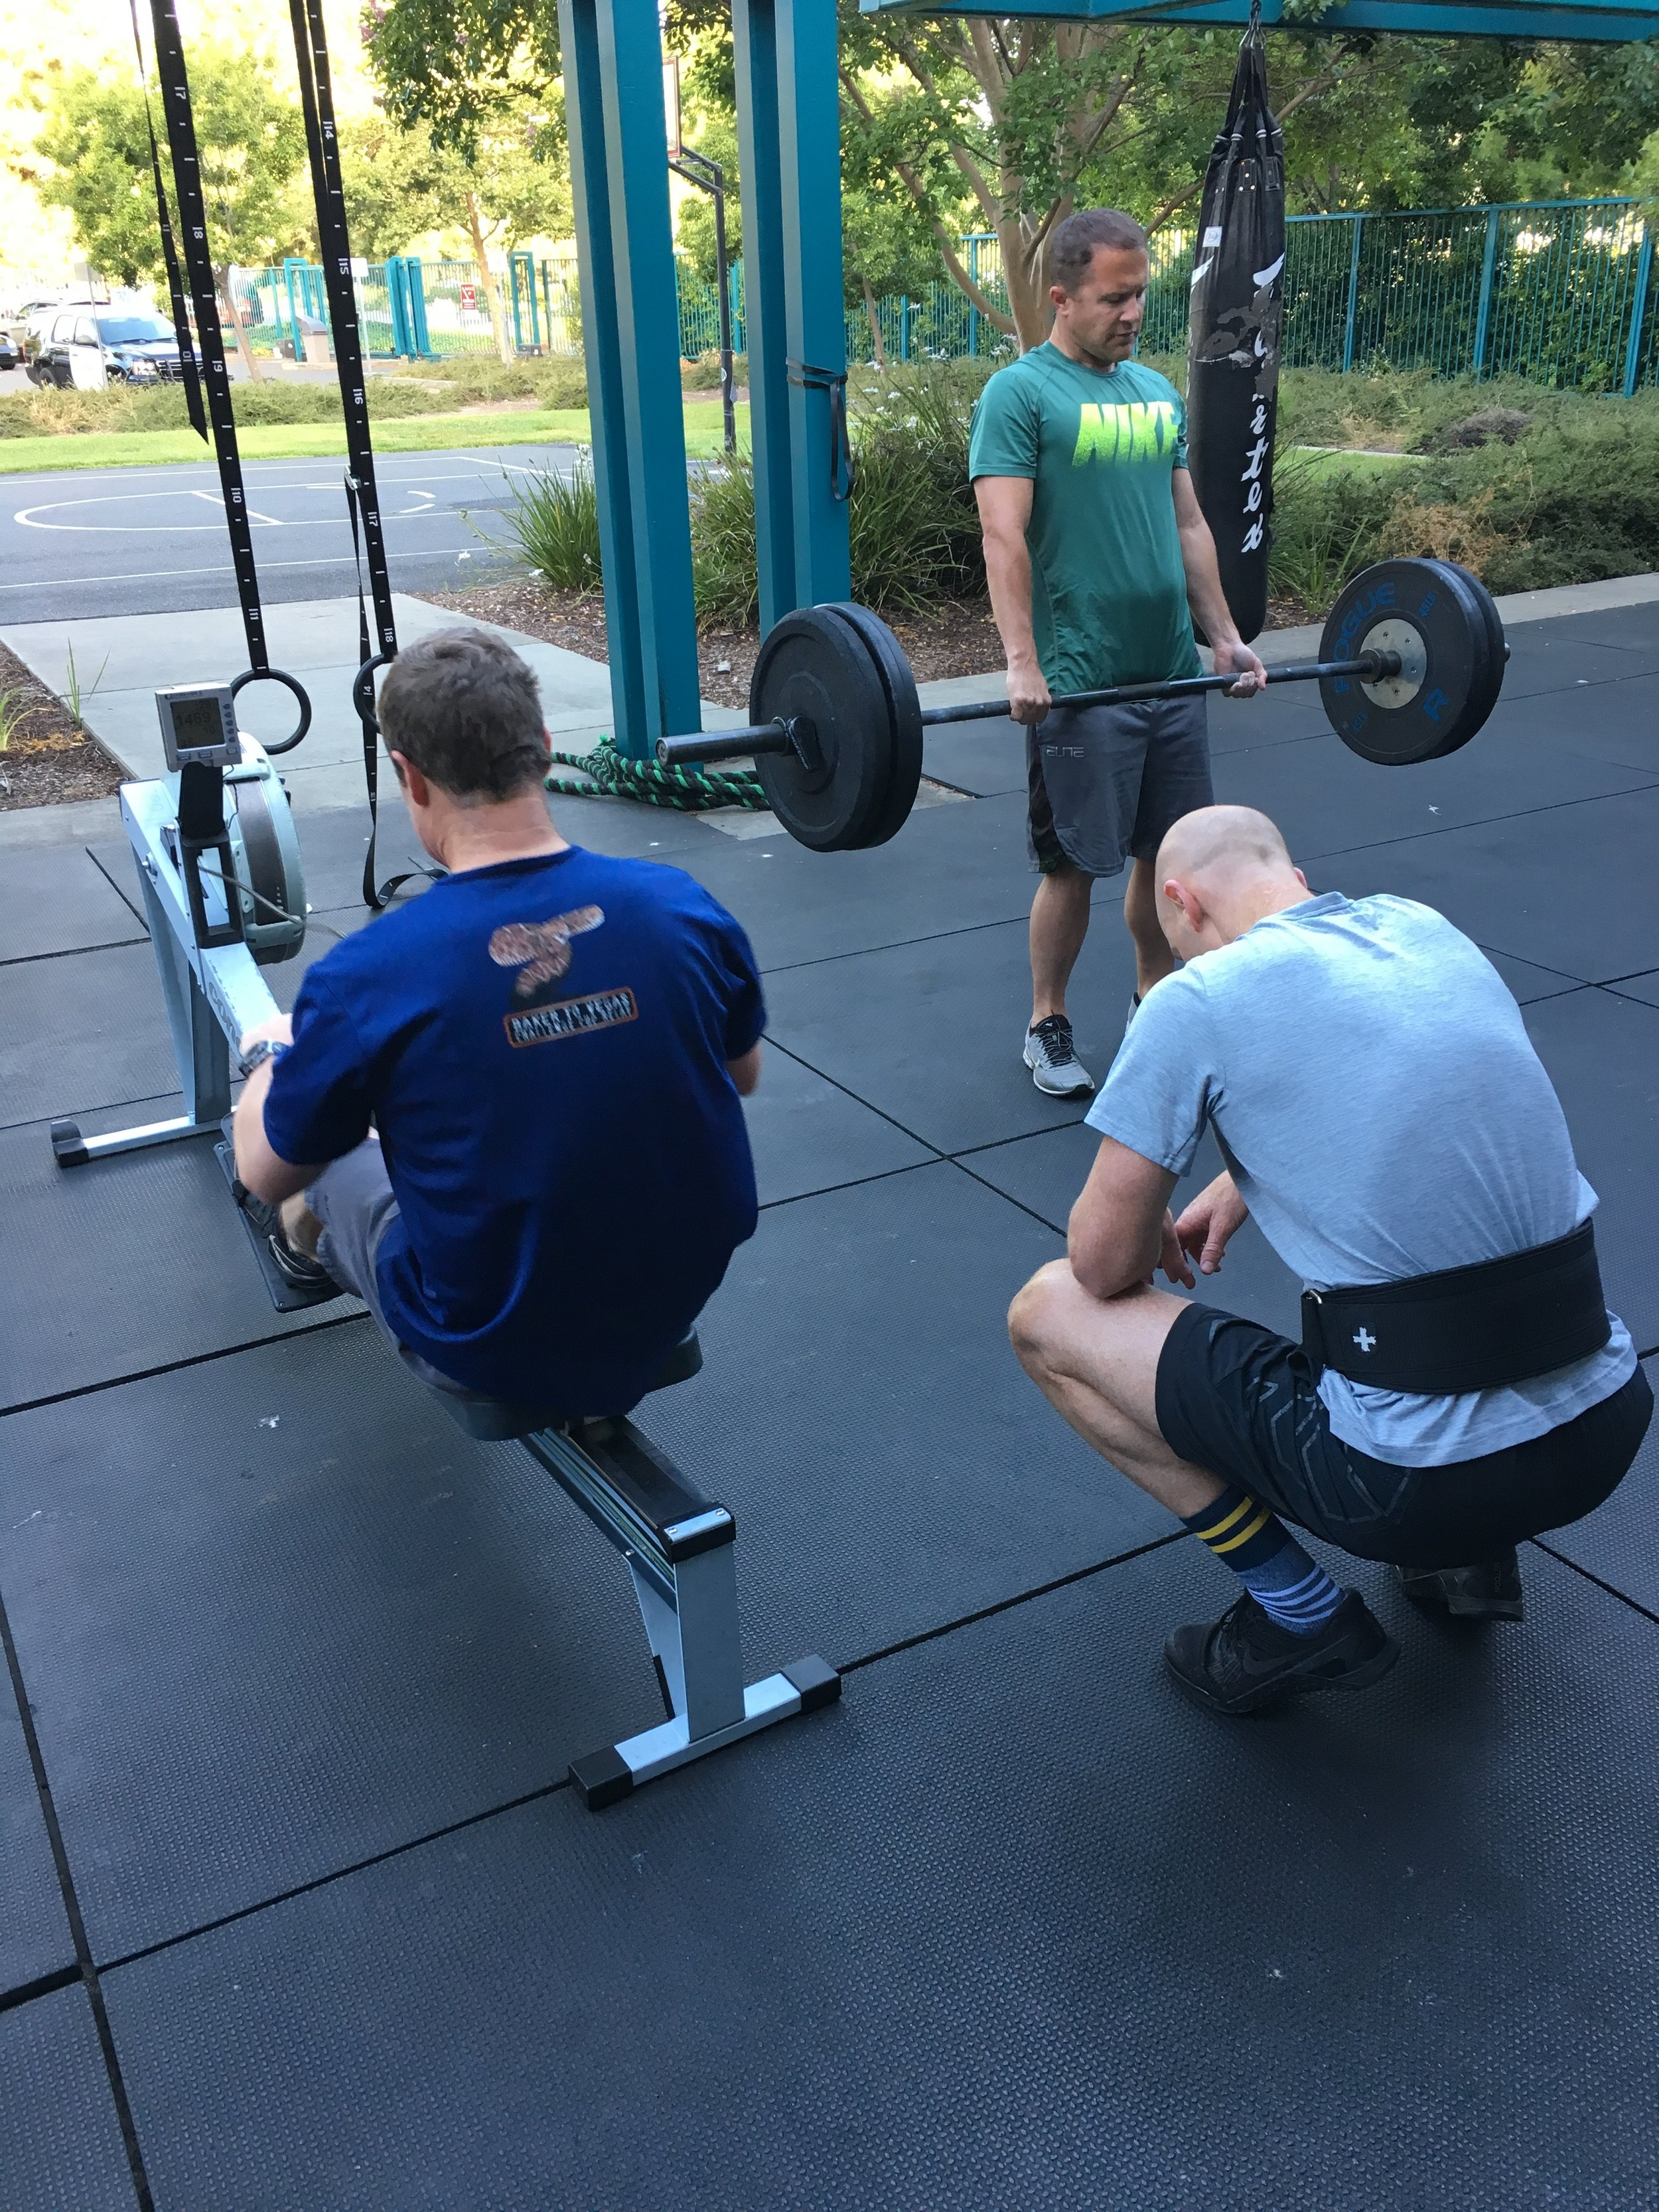 Battle of the Badges workout #1 testing